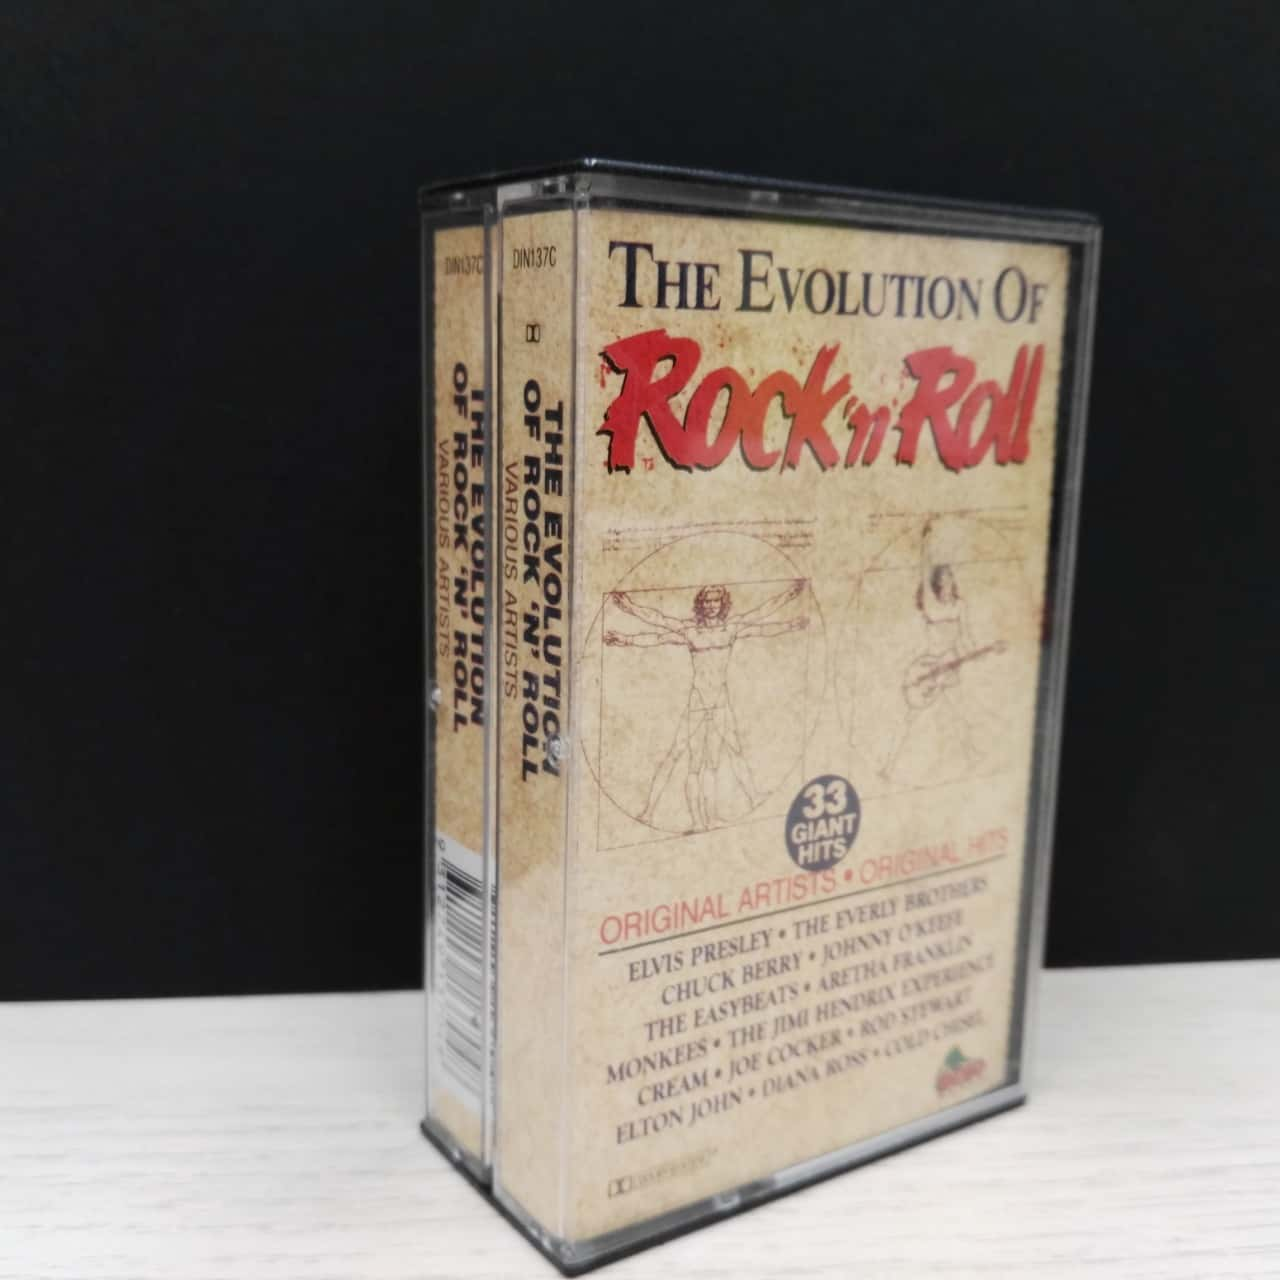 Music Cassette - Double Album - The Evolution Of Rock & Roll